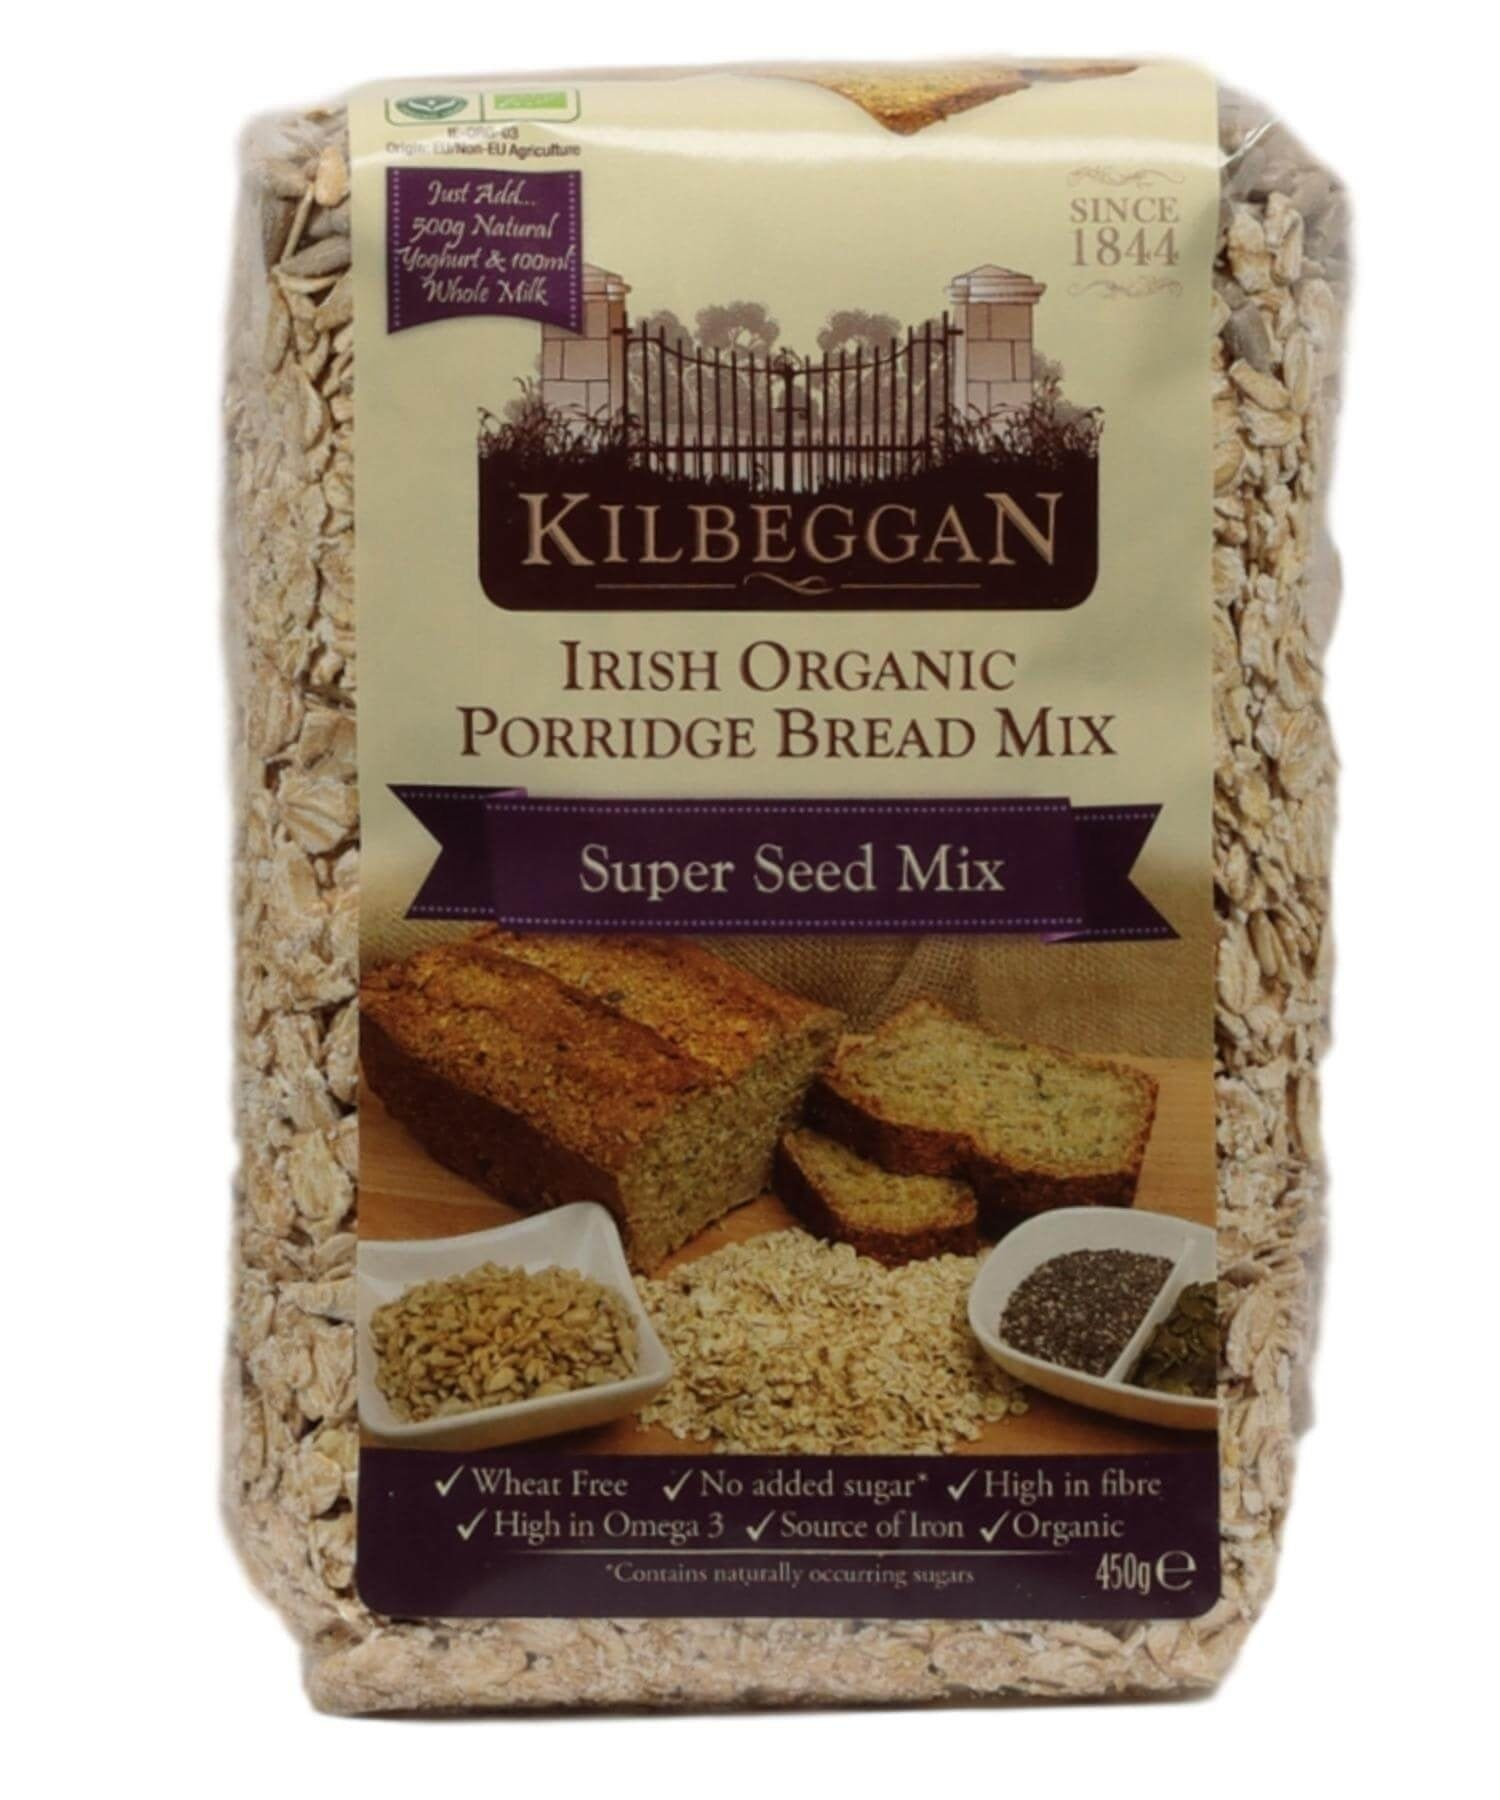 Organic Porridge Bread Mix - Super Seeds - [Kilbeggan] - Food Gifts - Irish Gifts